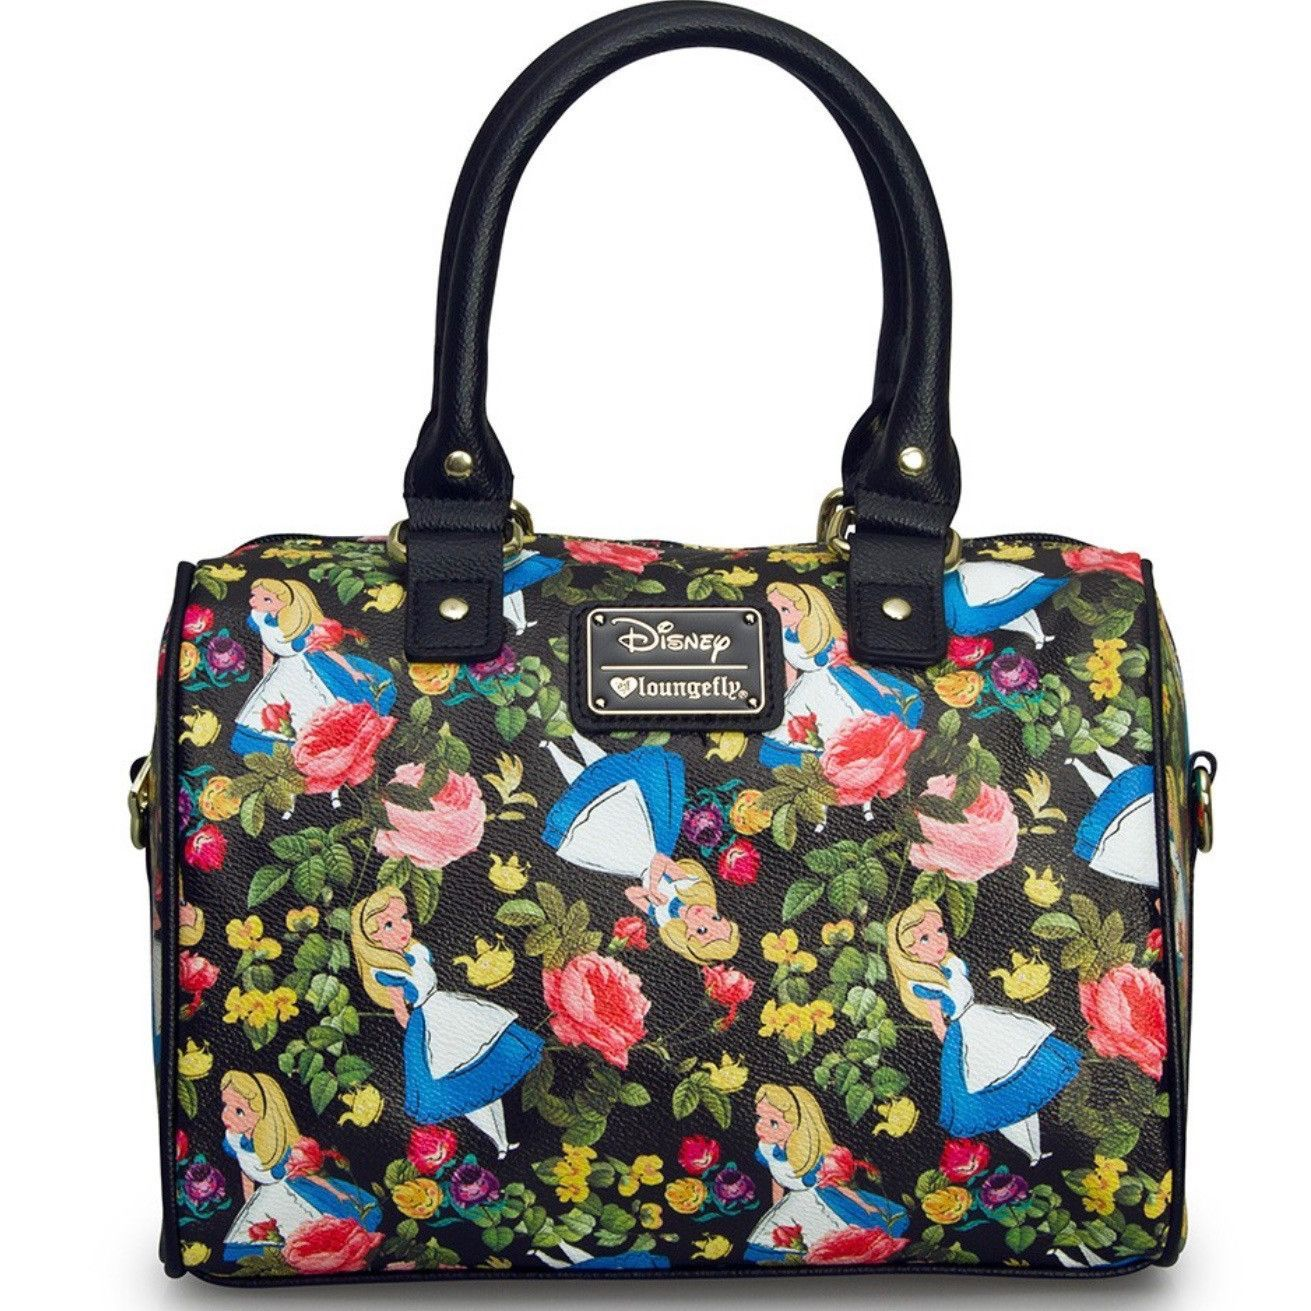 d2689ed77c Disney Alice in Wonderland floral print bag by Loungefly. Comes in multi  color print on pebble faux leather. Included adjustable shoulder strap.